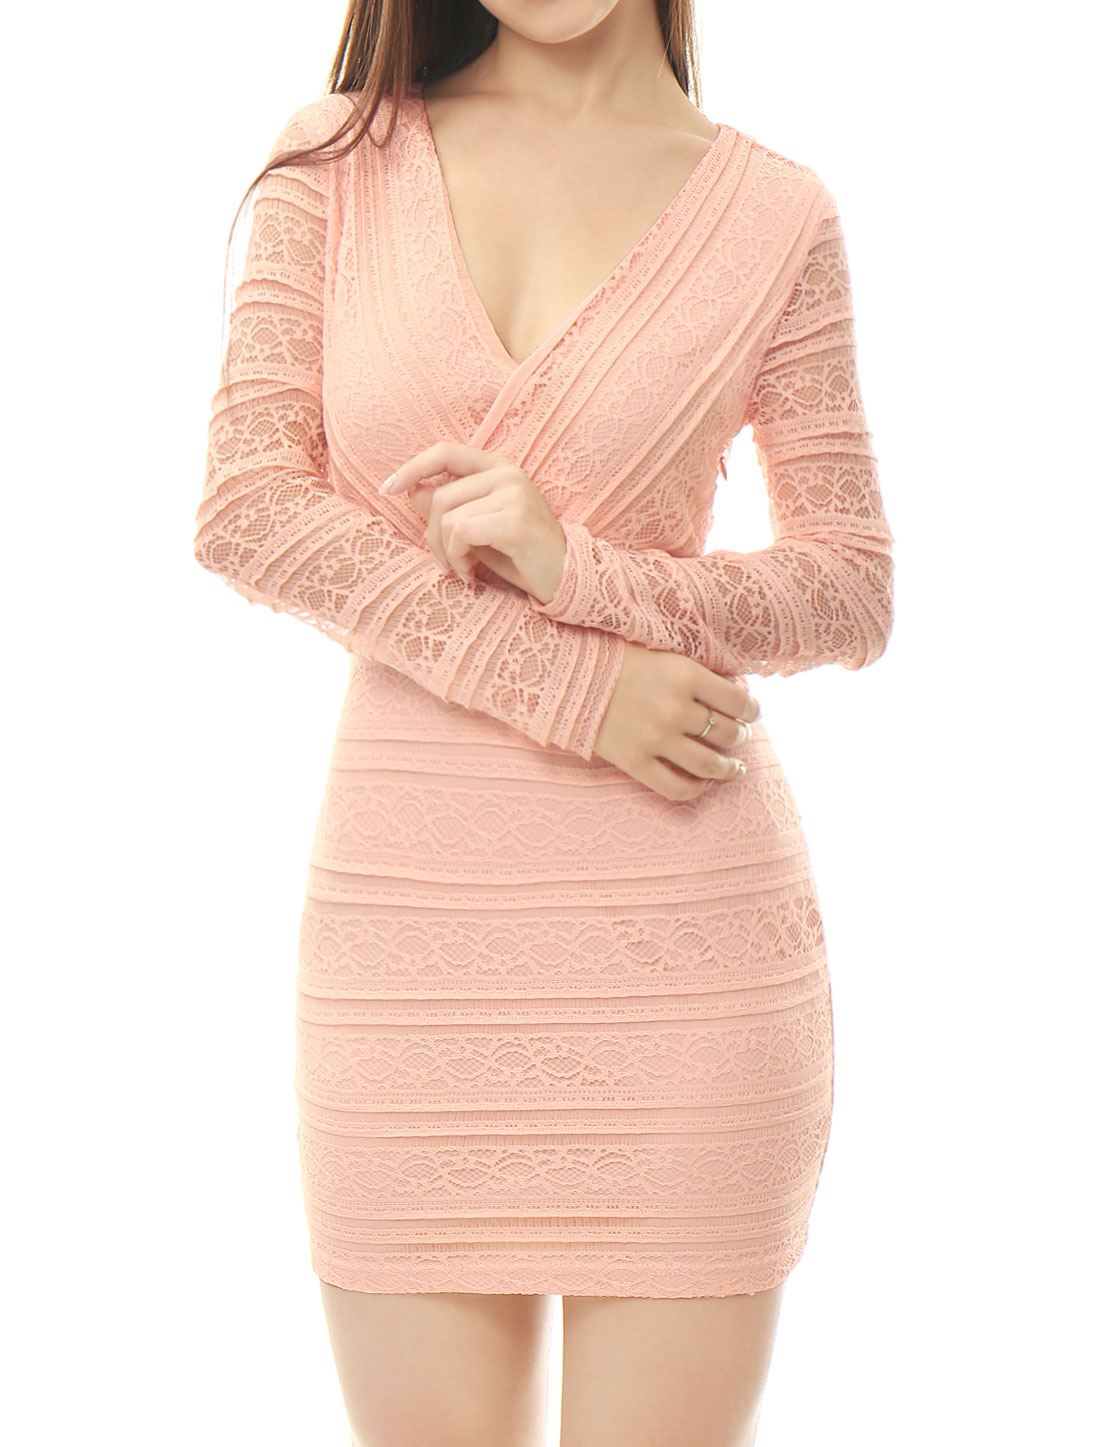 Women Lace Crossover V Neck Long Sleeves Bodycon Dress Pink M